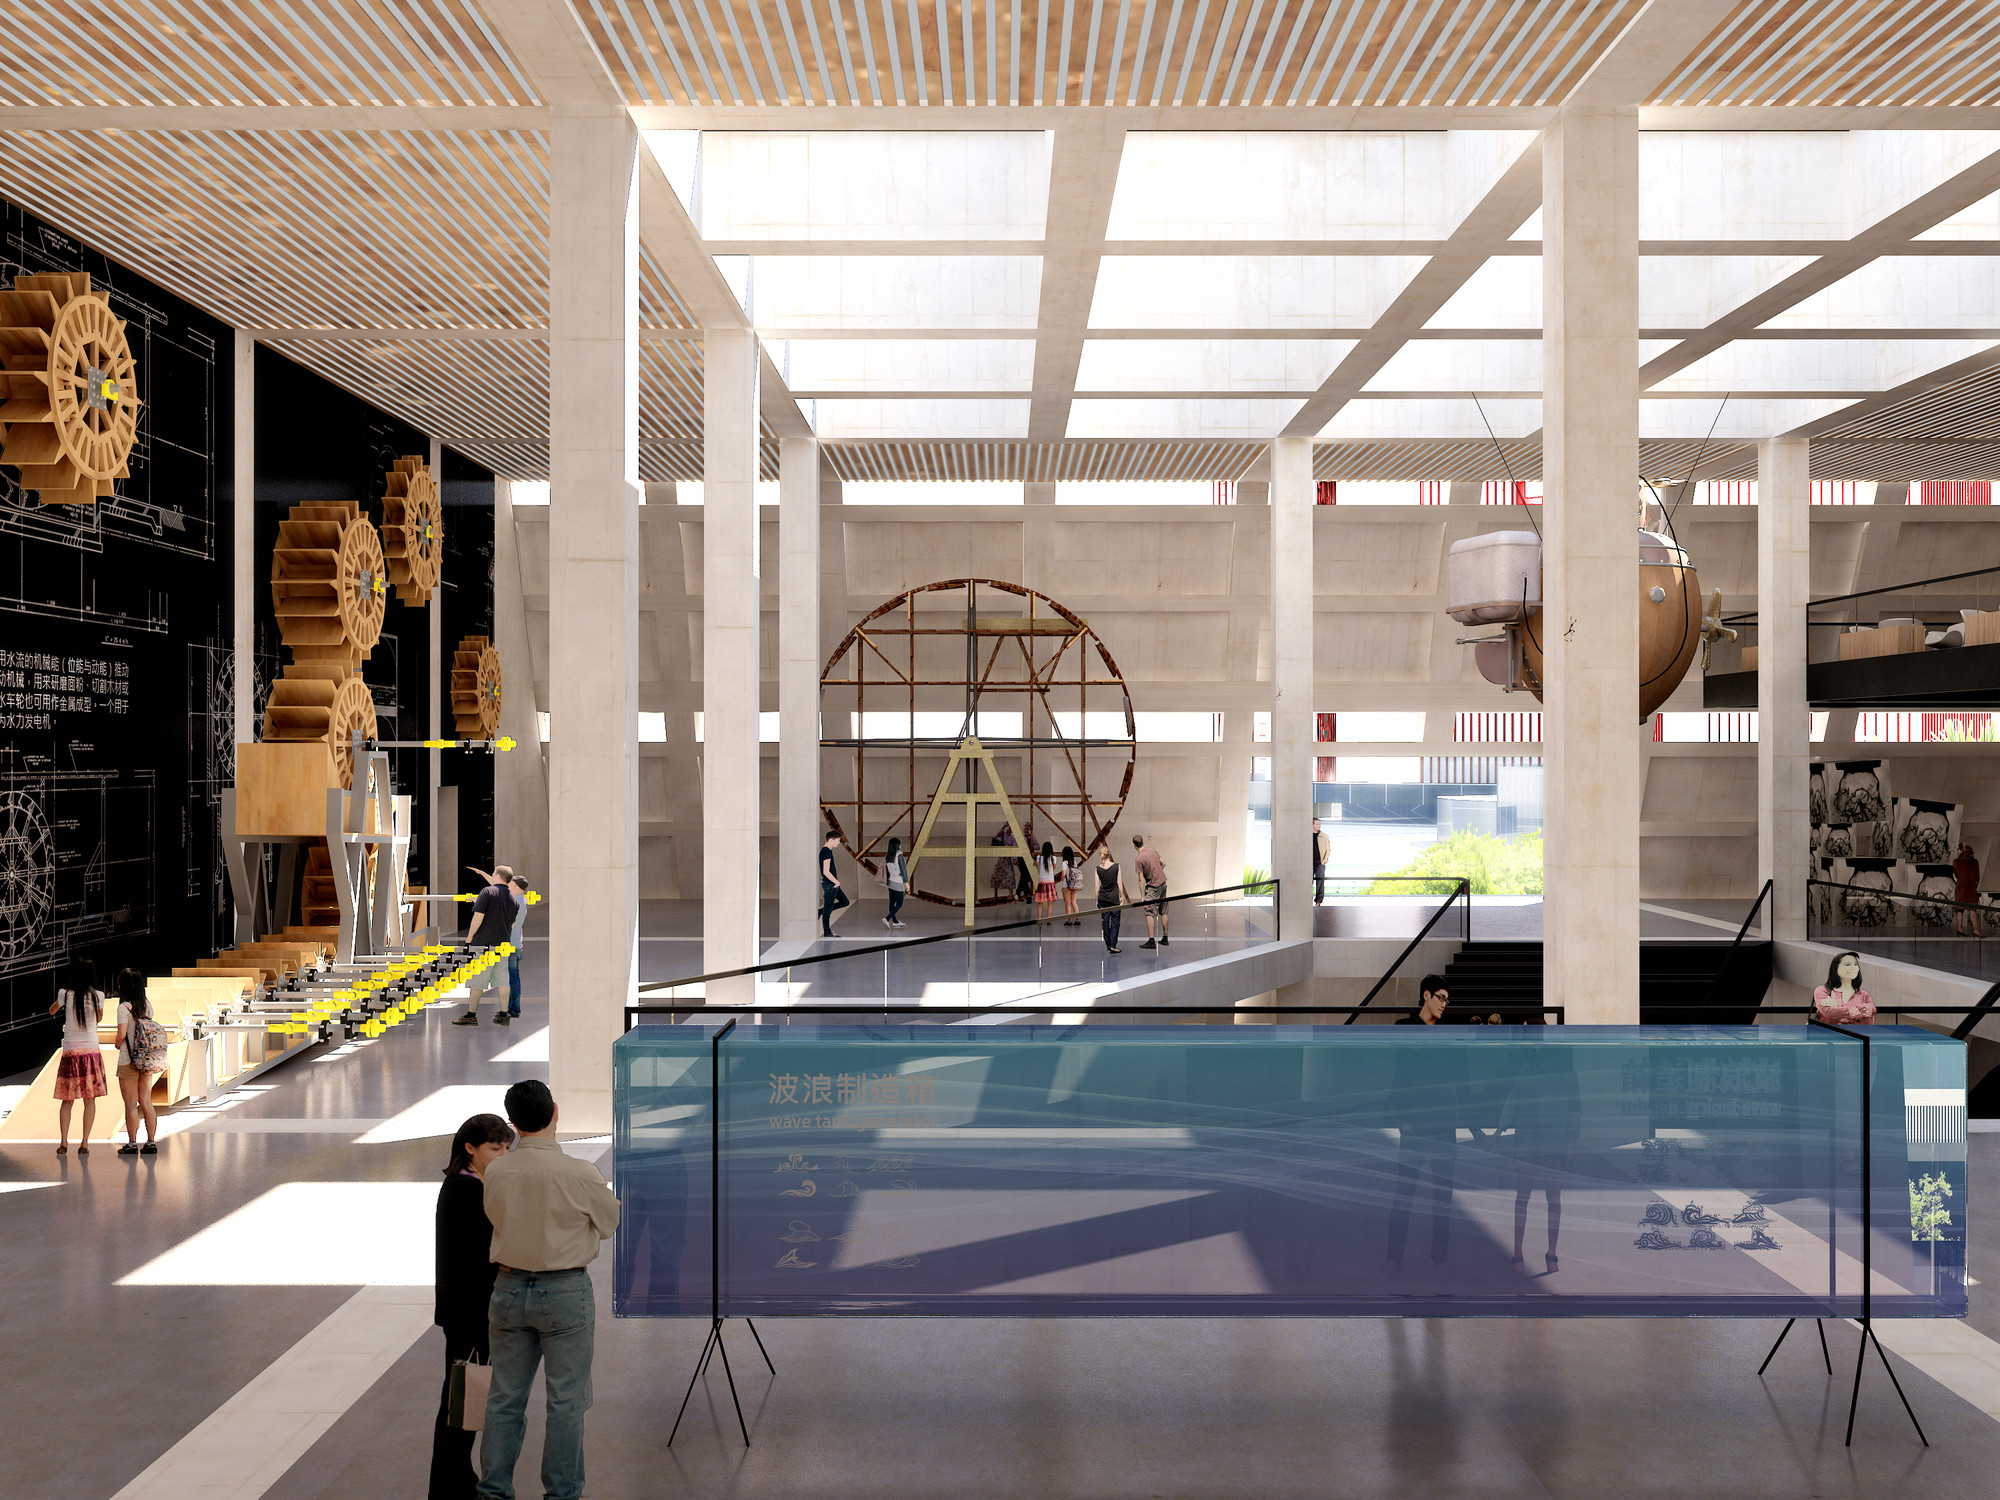 Exhibition Space. Image Courtesy of Mecanoo / Doug and Wolf